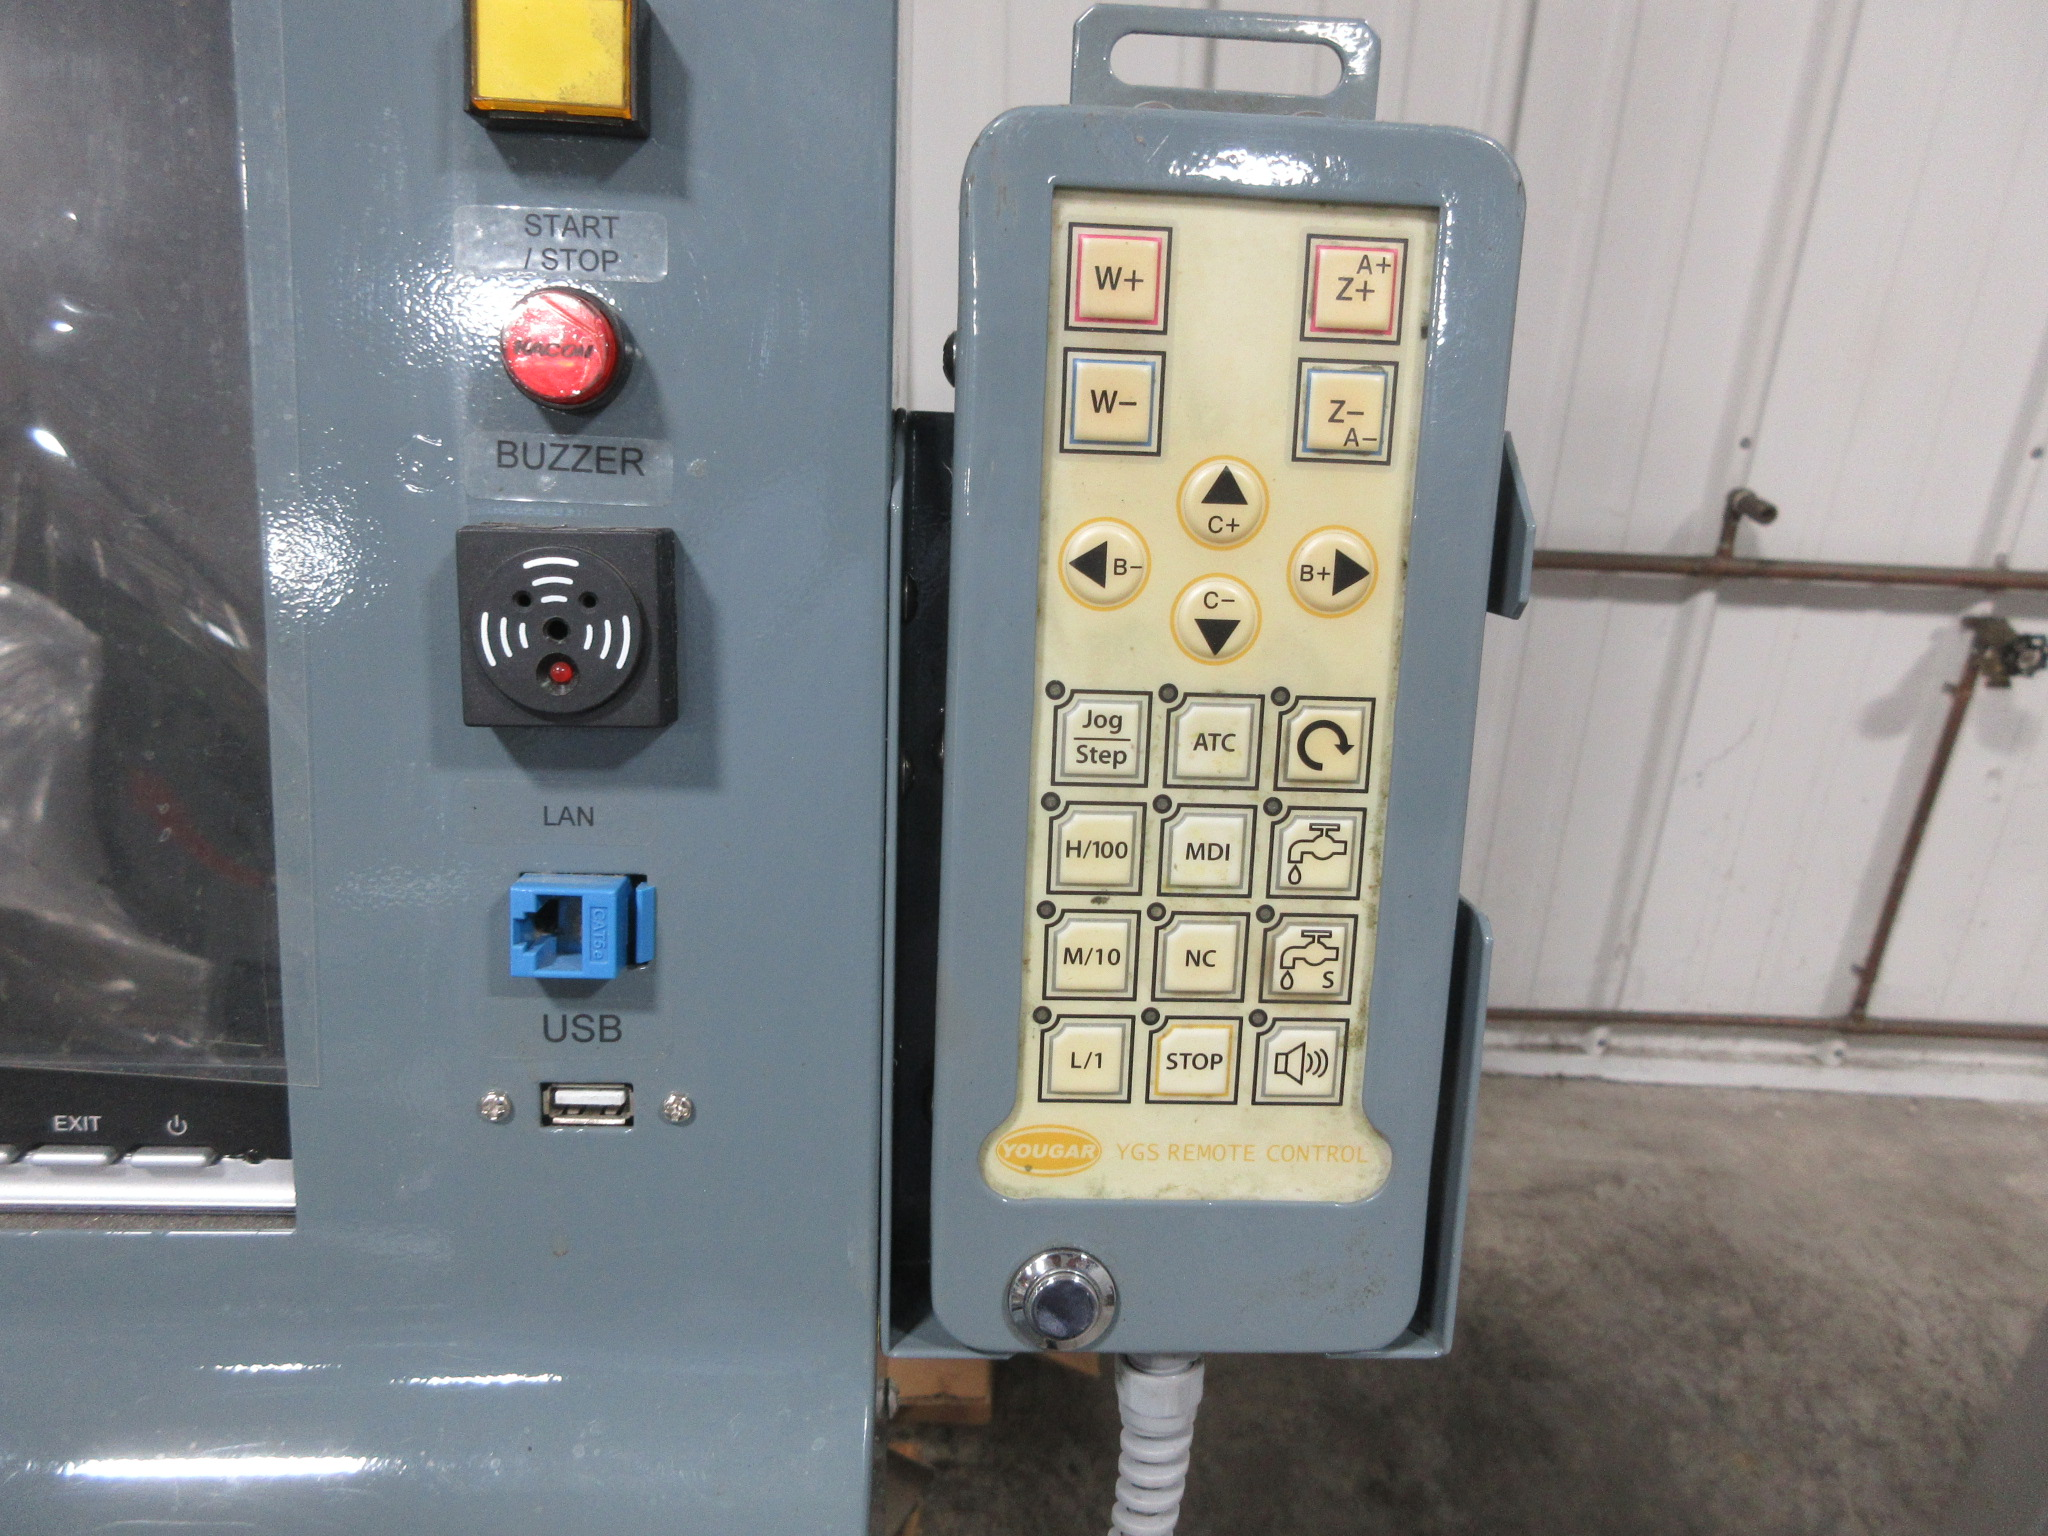 2014 CNC EDM DRILL, LARGE TRAVELS-LOW PRICE, INSPECT UNDER POWER